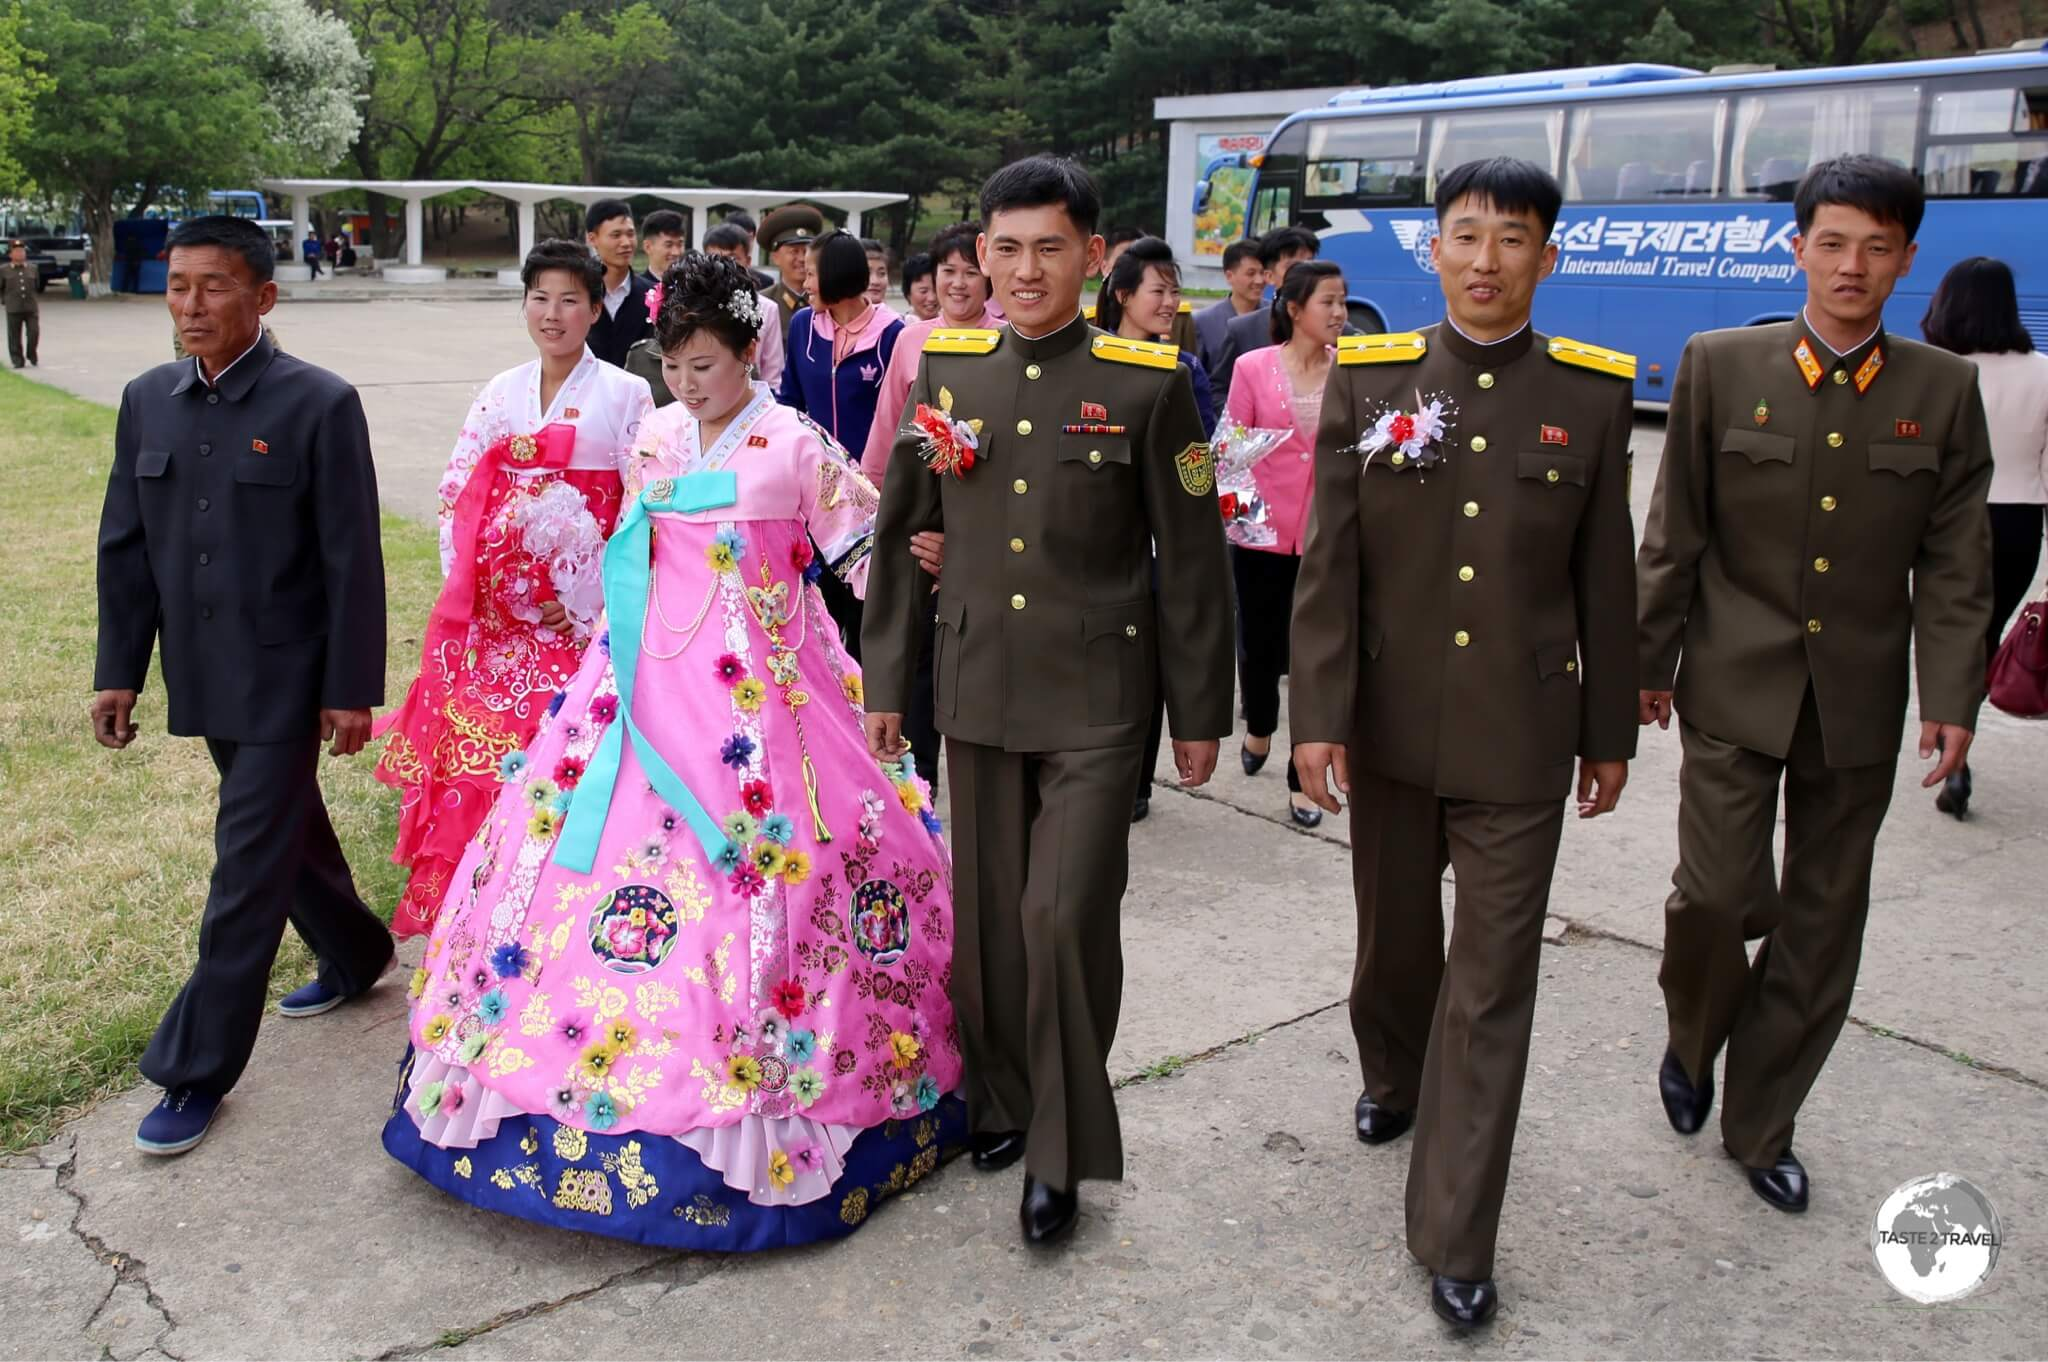 Newlyweds on their way to pay their respects at a statue of the dear leader.